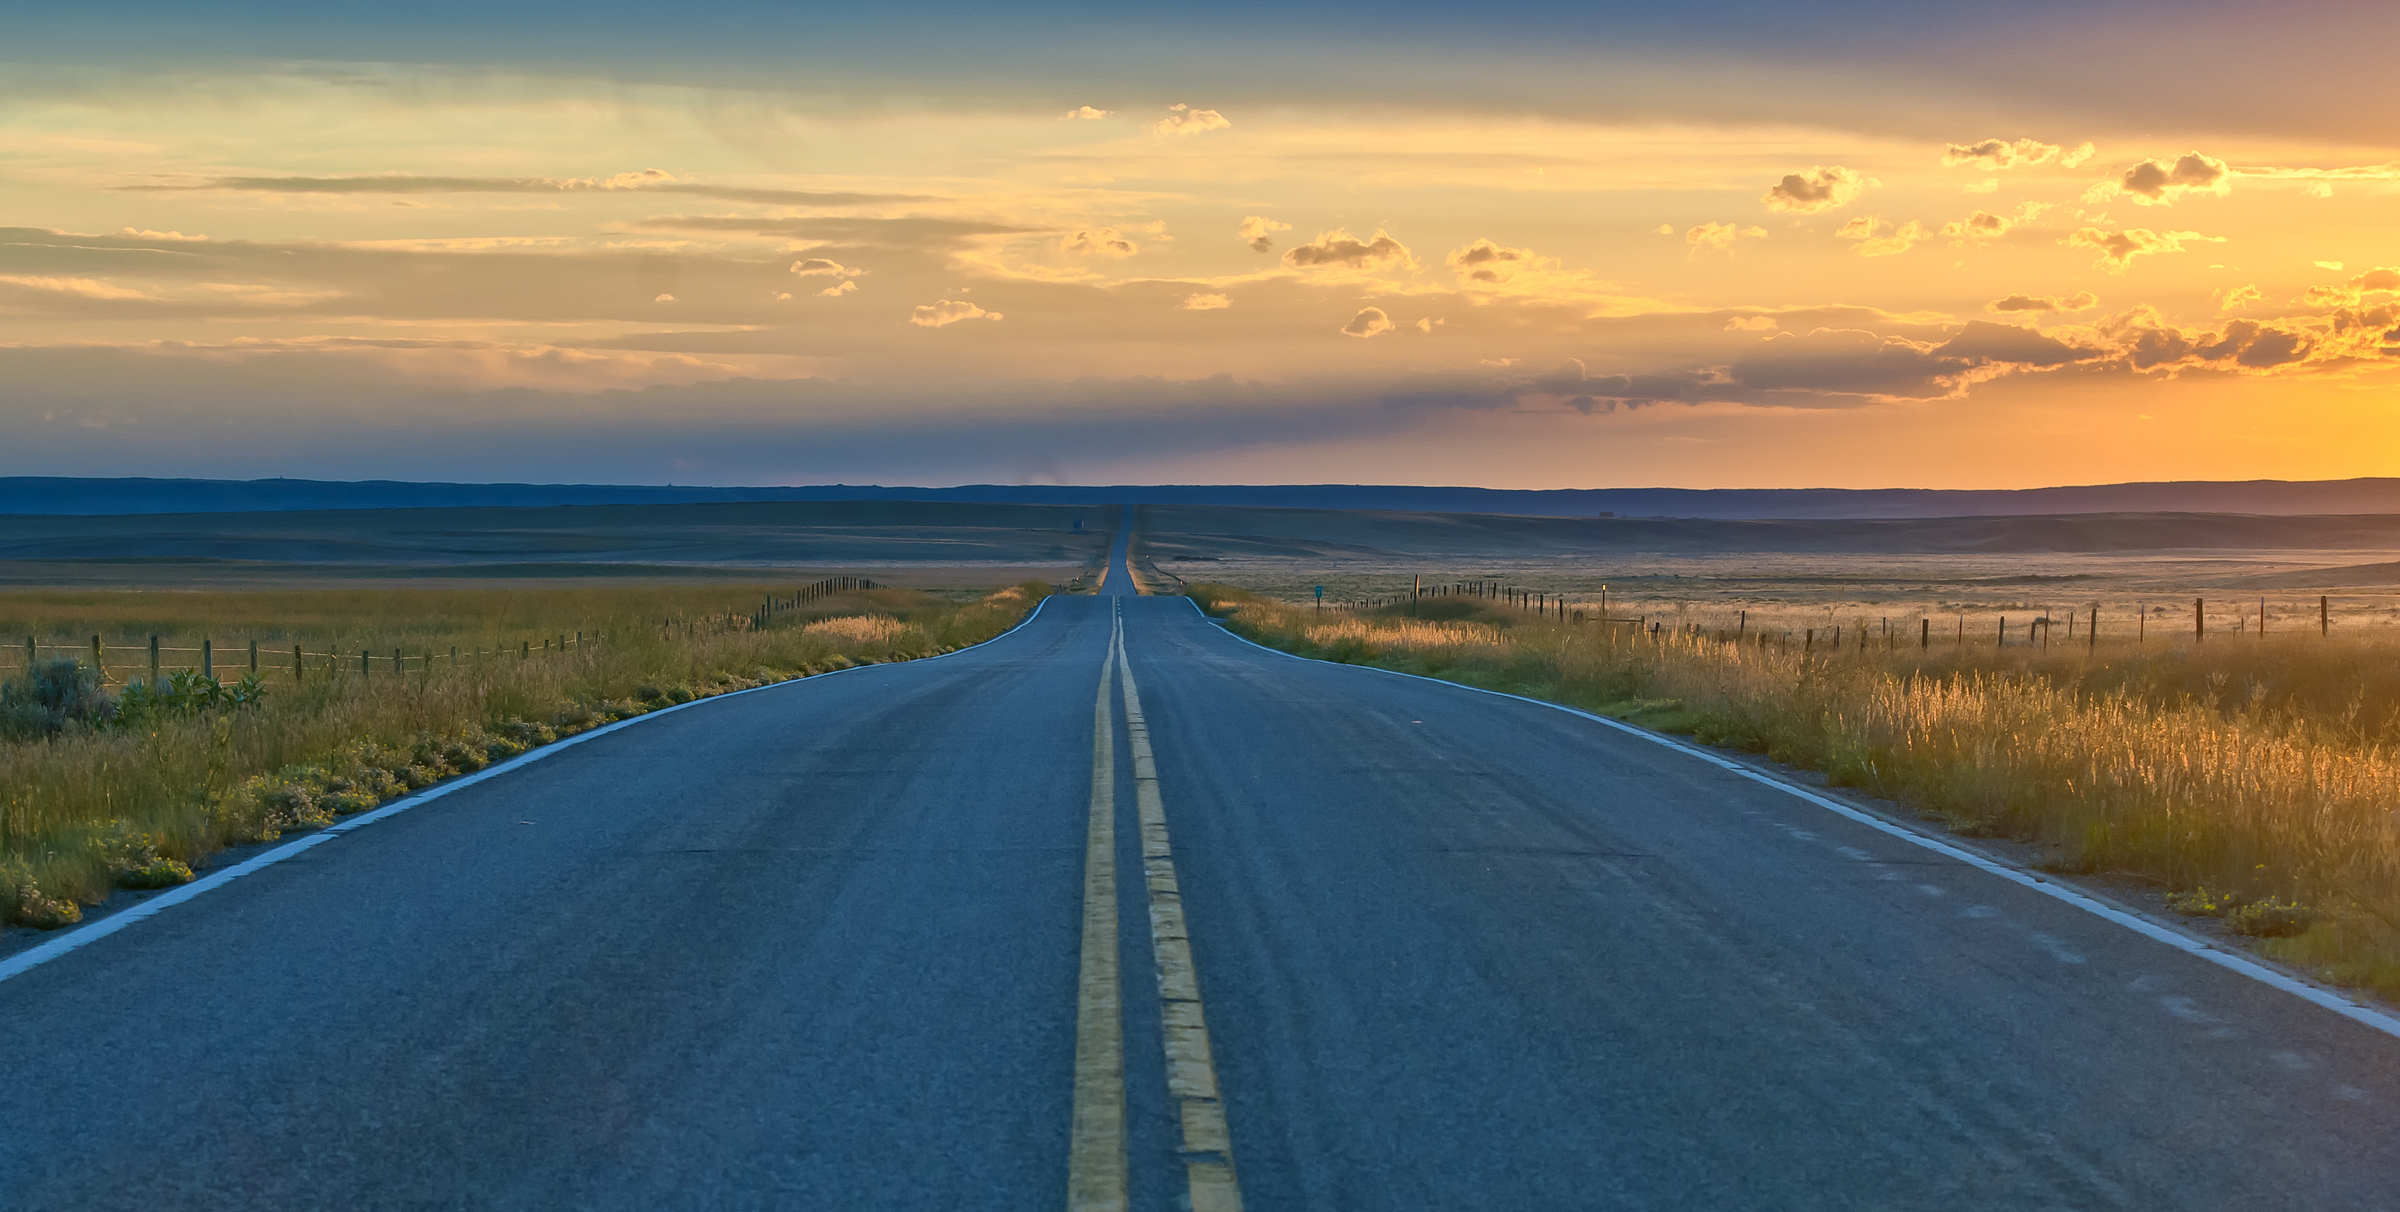 straight road disappearing into distance on horizon with sunset. Sunburst, MT